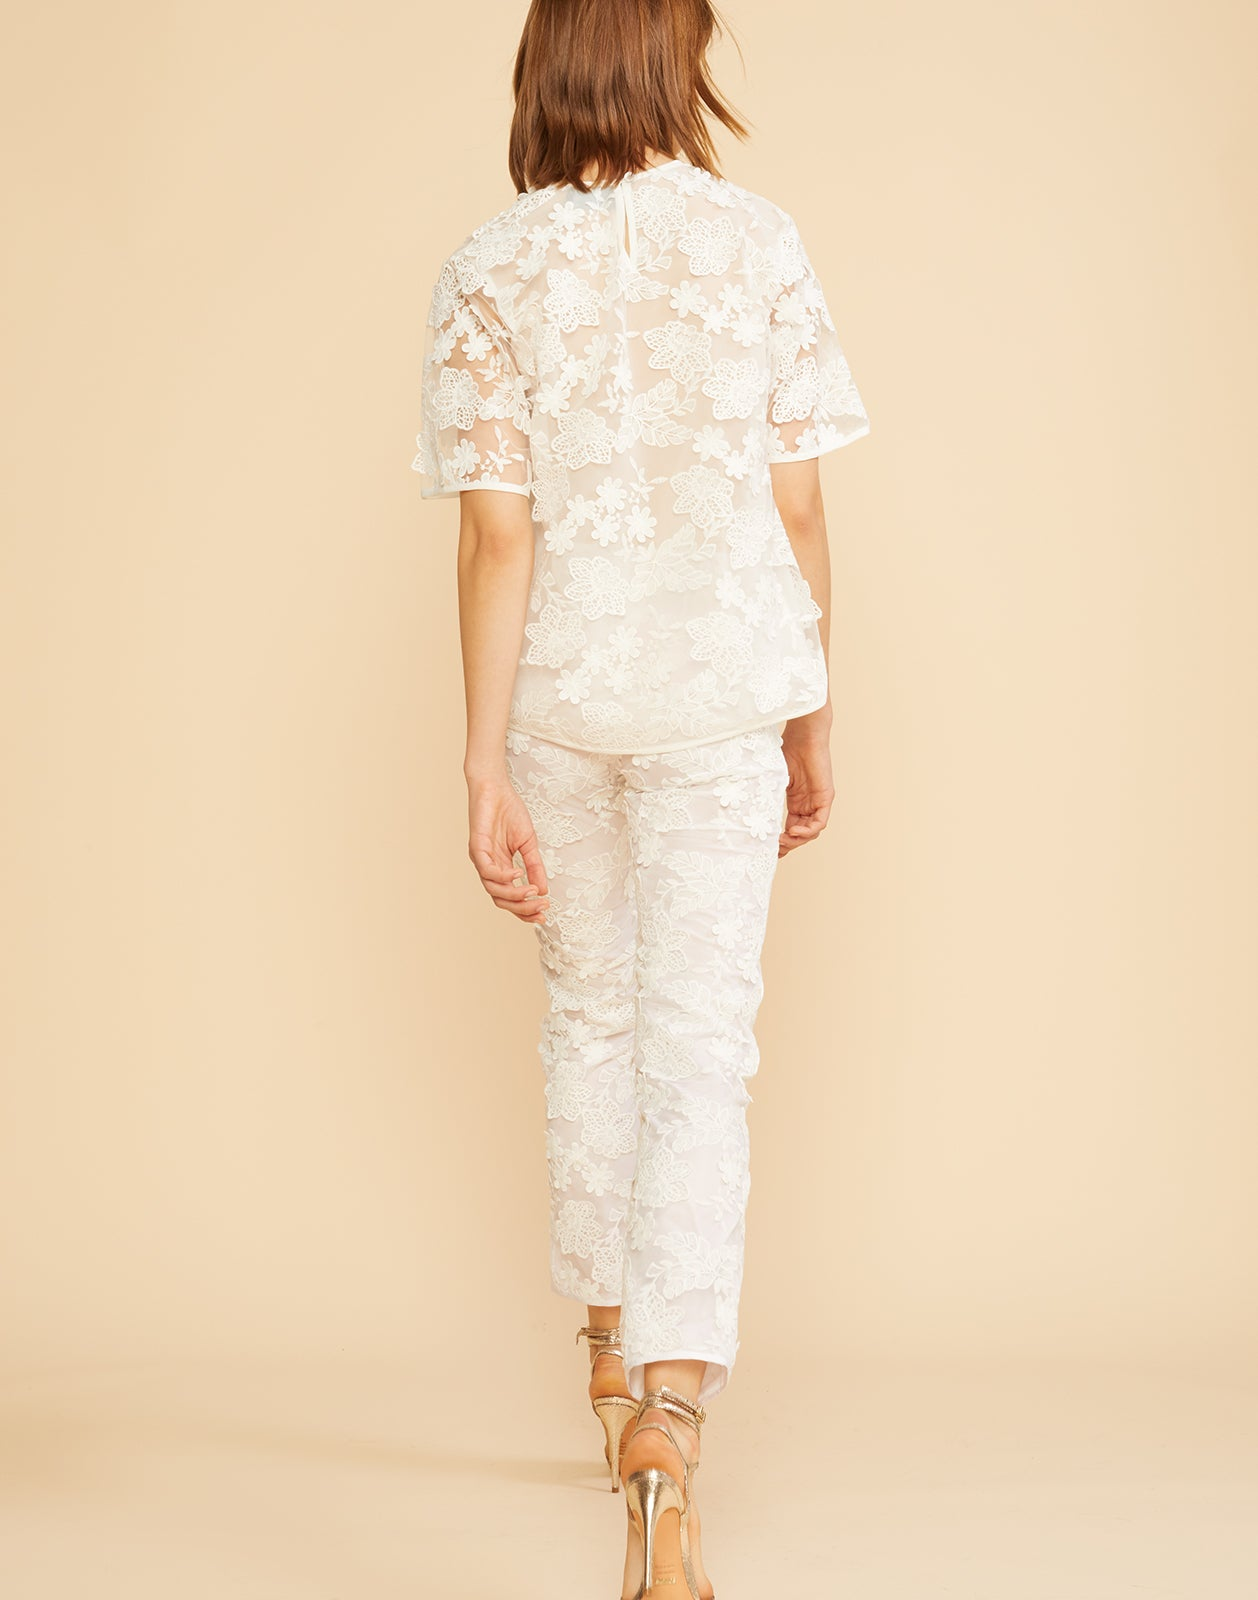 Back view of the floral lace pants with underlining.